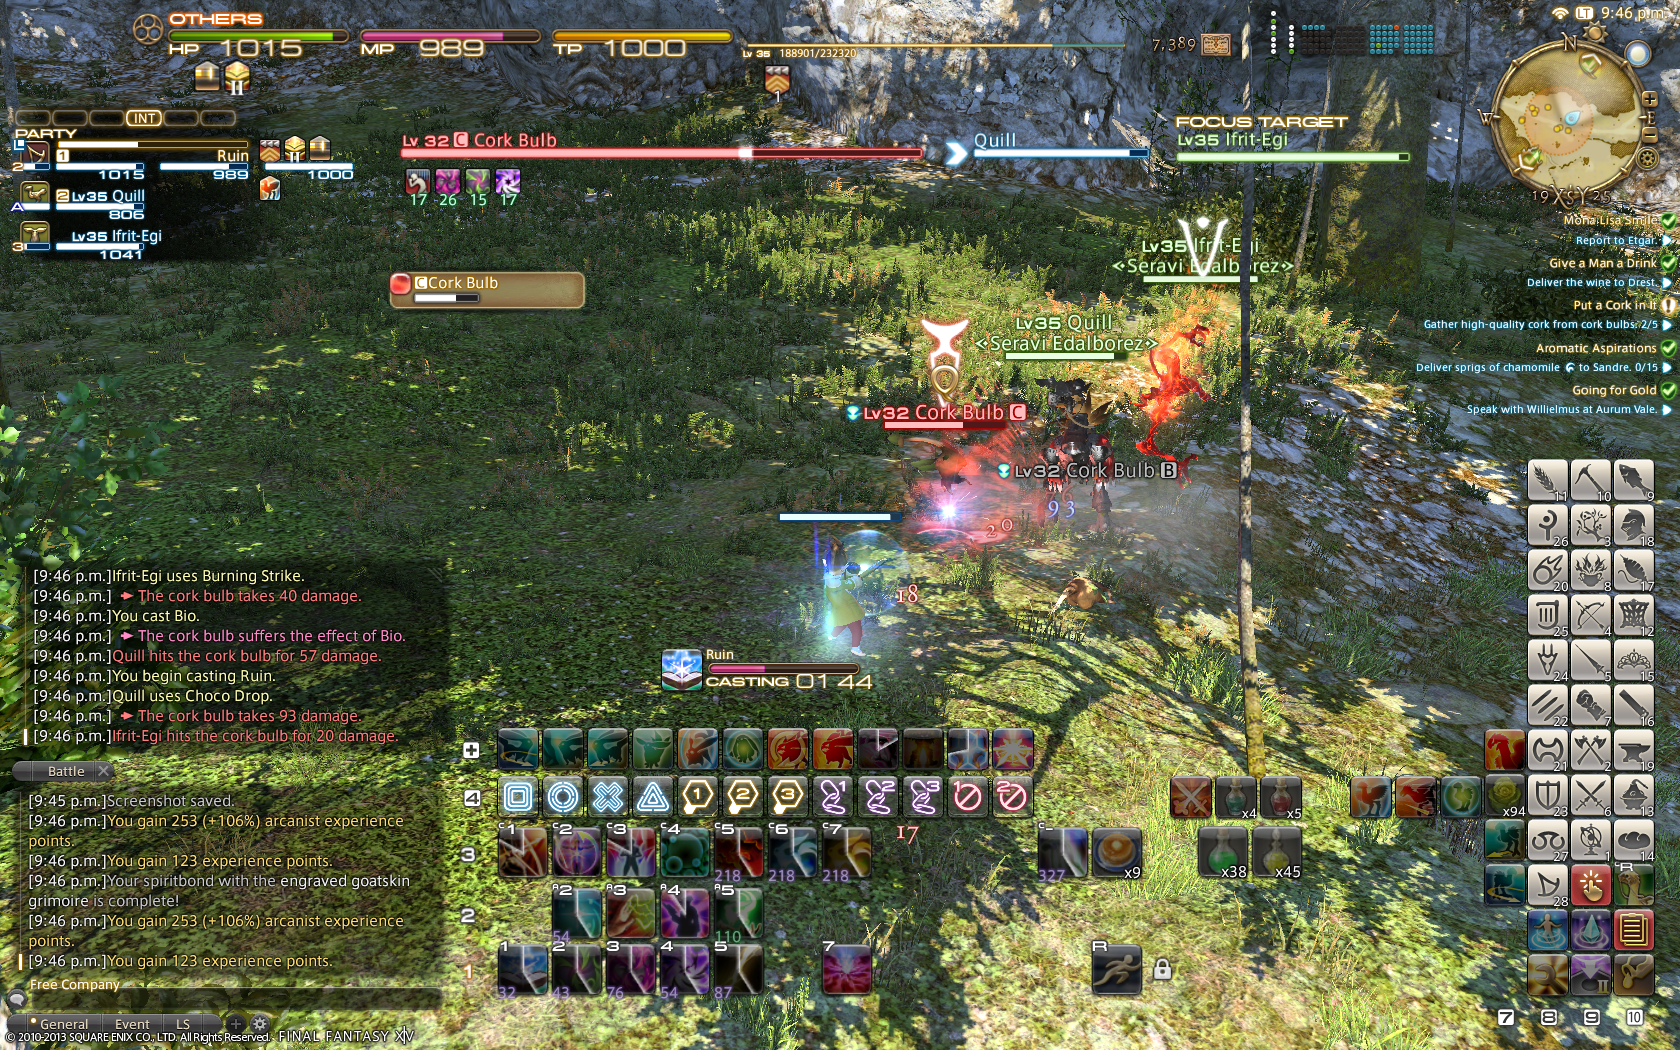 seravi edalborez ffxiv make petbar command toggle your visibility pictures remember anyone post know